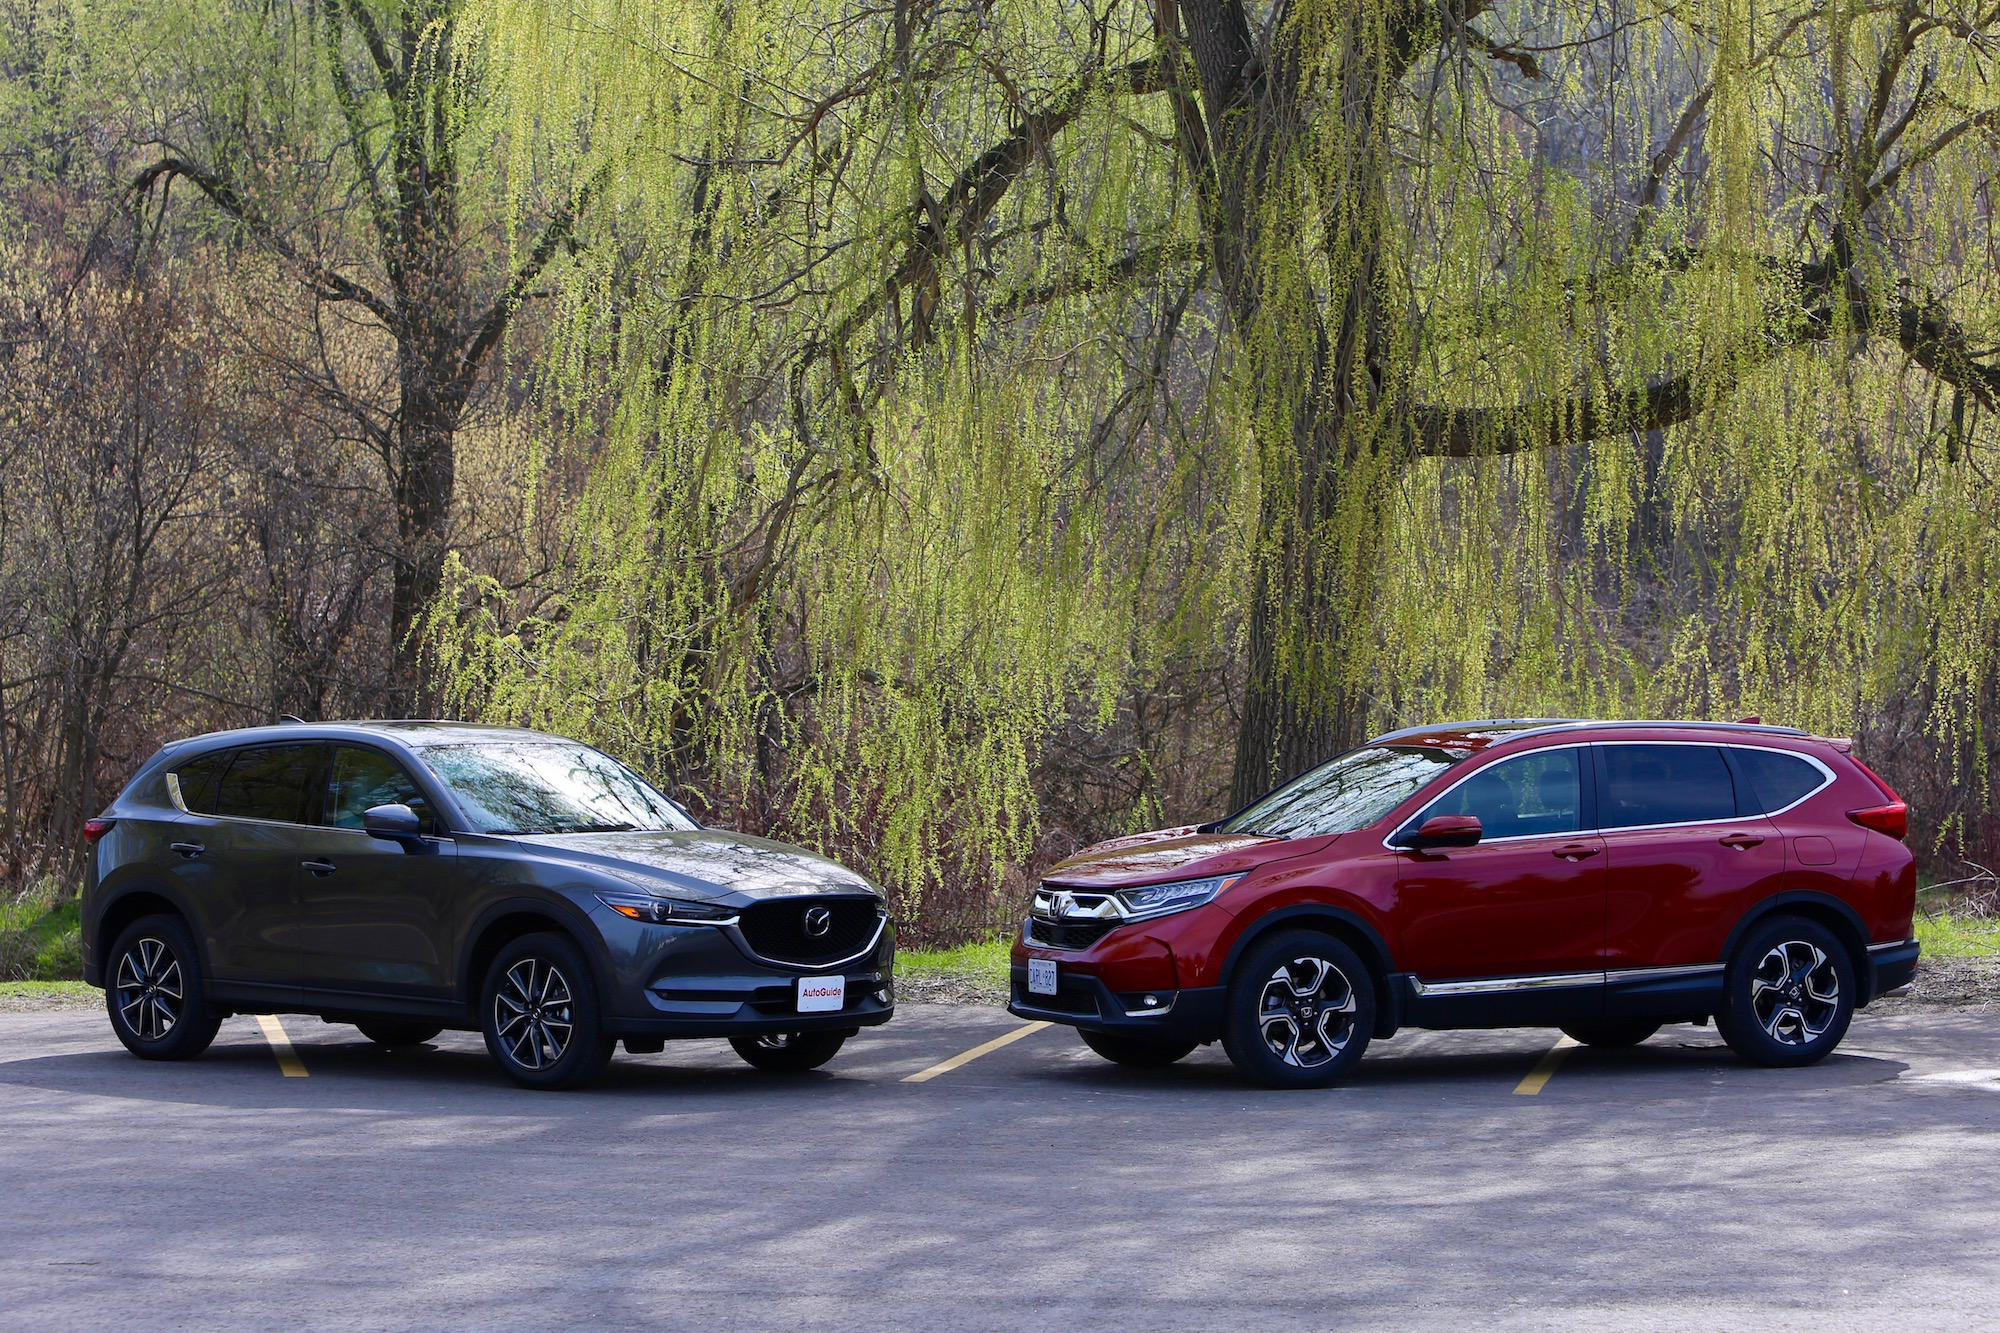 2017-Honda-CRV-vs-2017-Mazda-CX5-01 Take A Look About Honda Cr 100